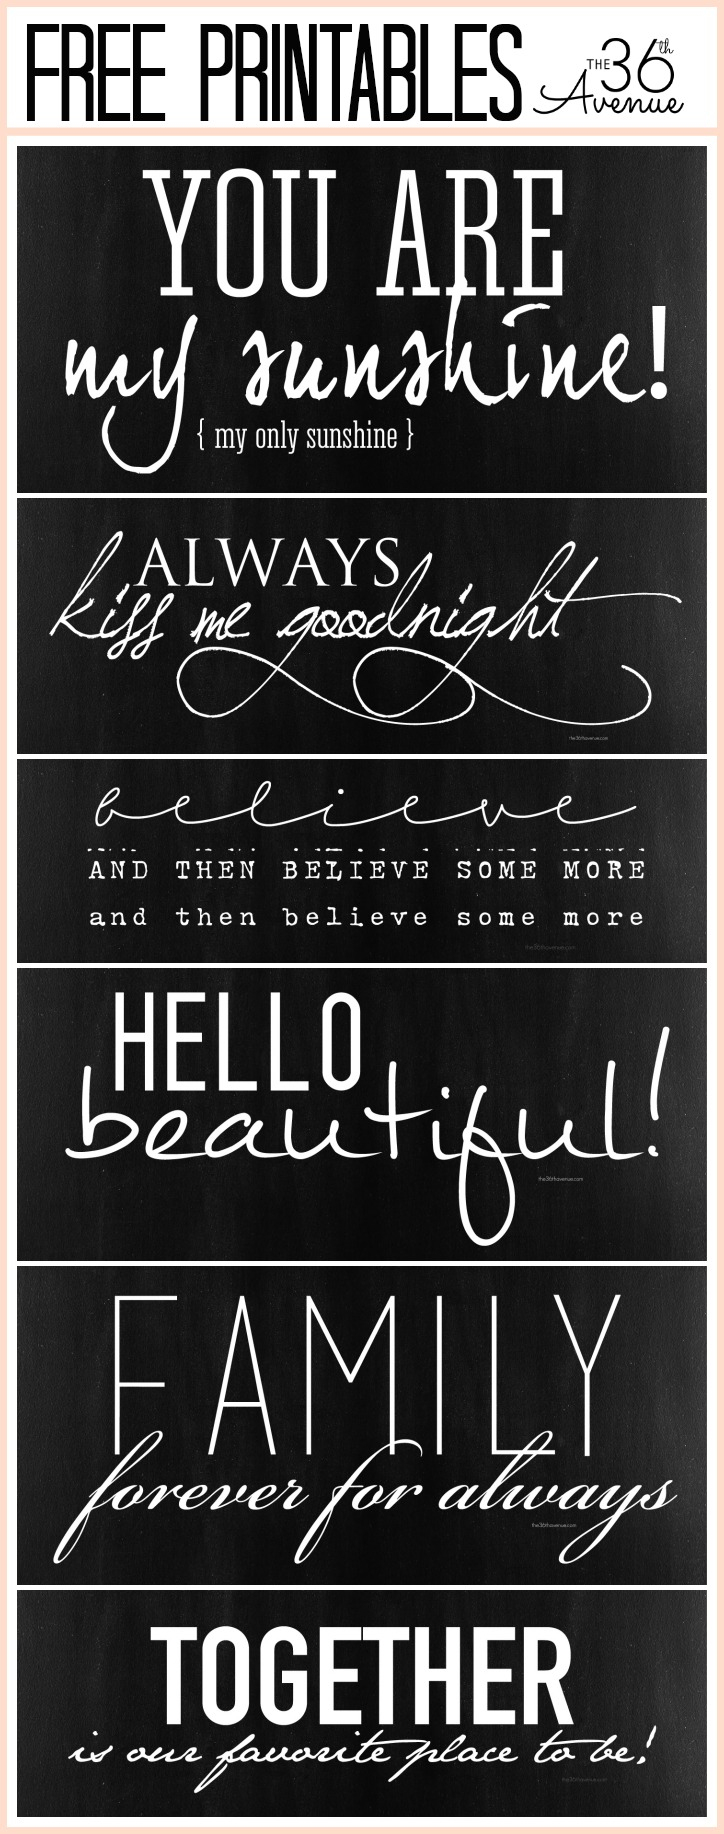 Free Fonts And Printable Combinations - The 36Th Avenue - Free Printable Fonts